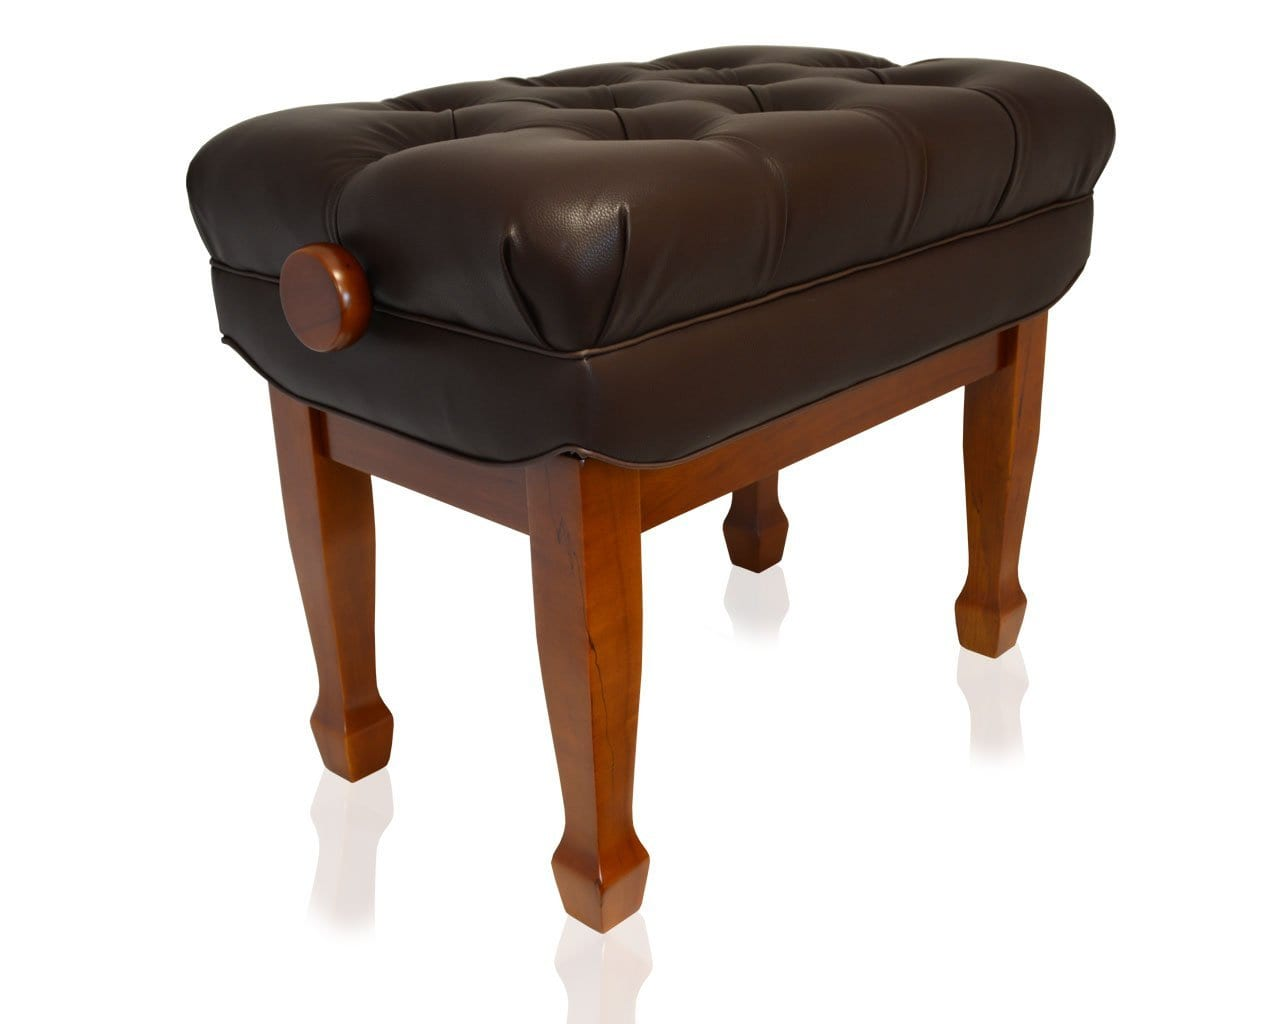 Frederick Adjustable Concert Series Tufted - Walnut Satin